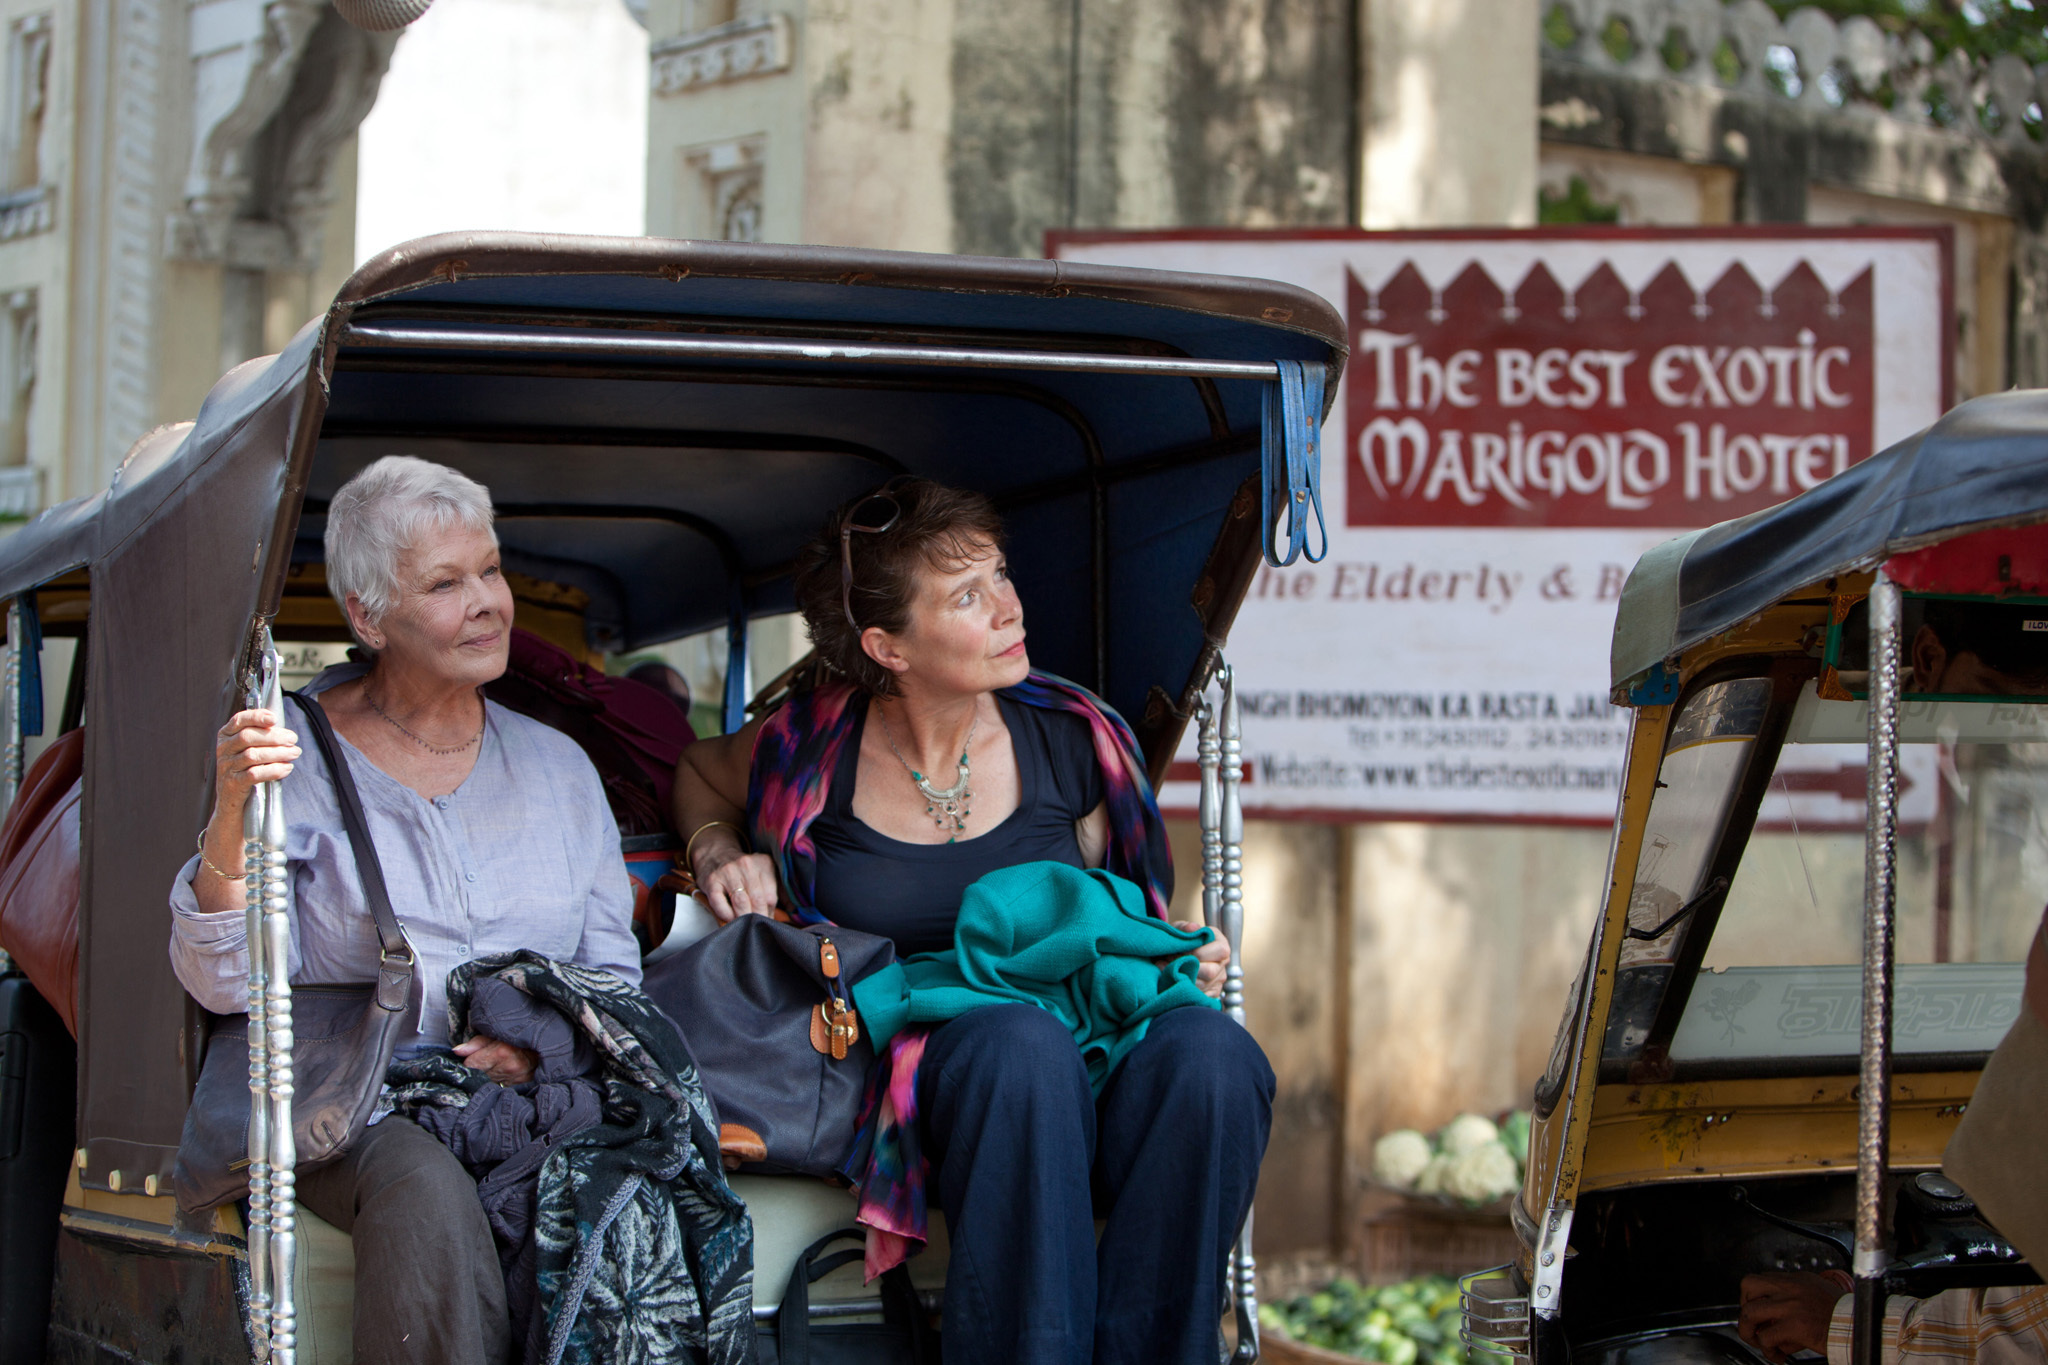 Dame Judi Dench, left, and Celia Imrie in The Best Exotic Marigold Hotel